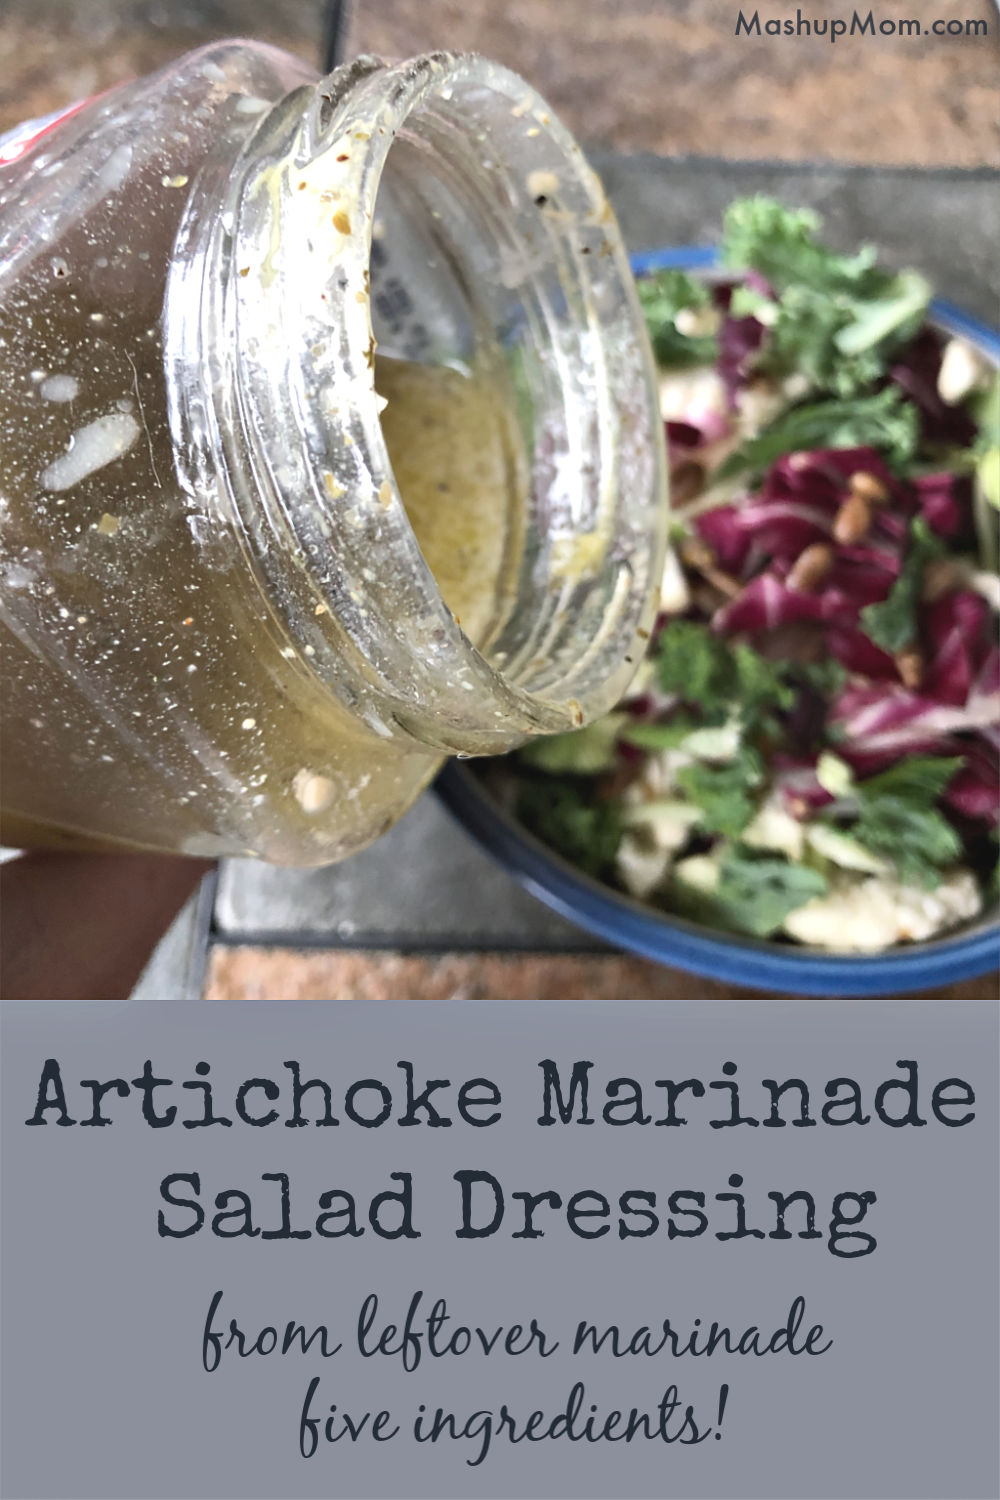 artichoke marinade salad dressing from leftover marinade -- just five ingredients